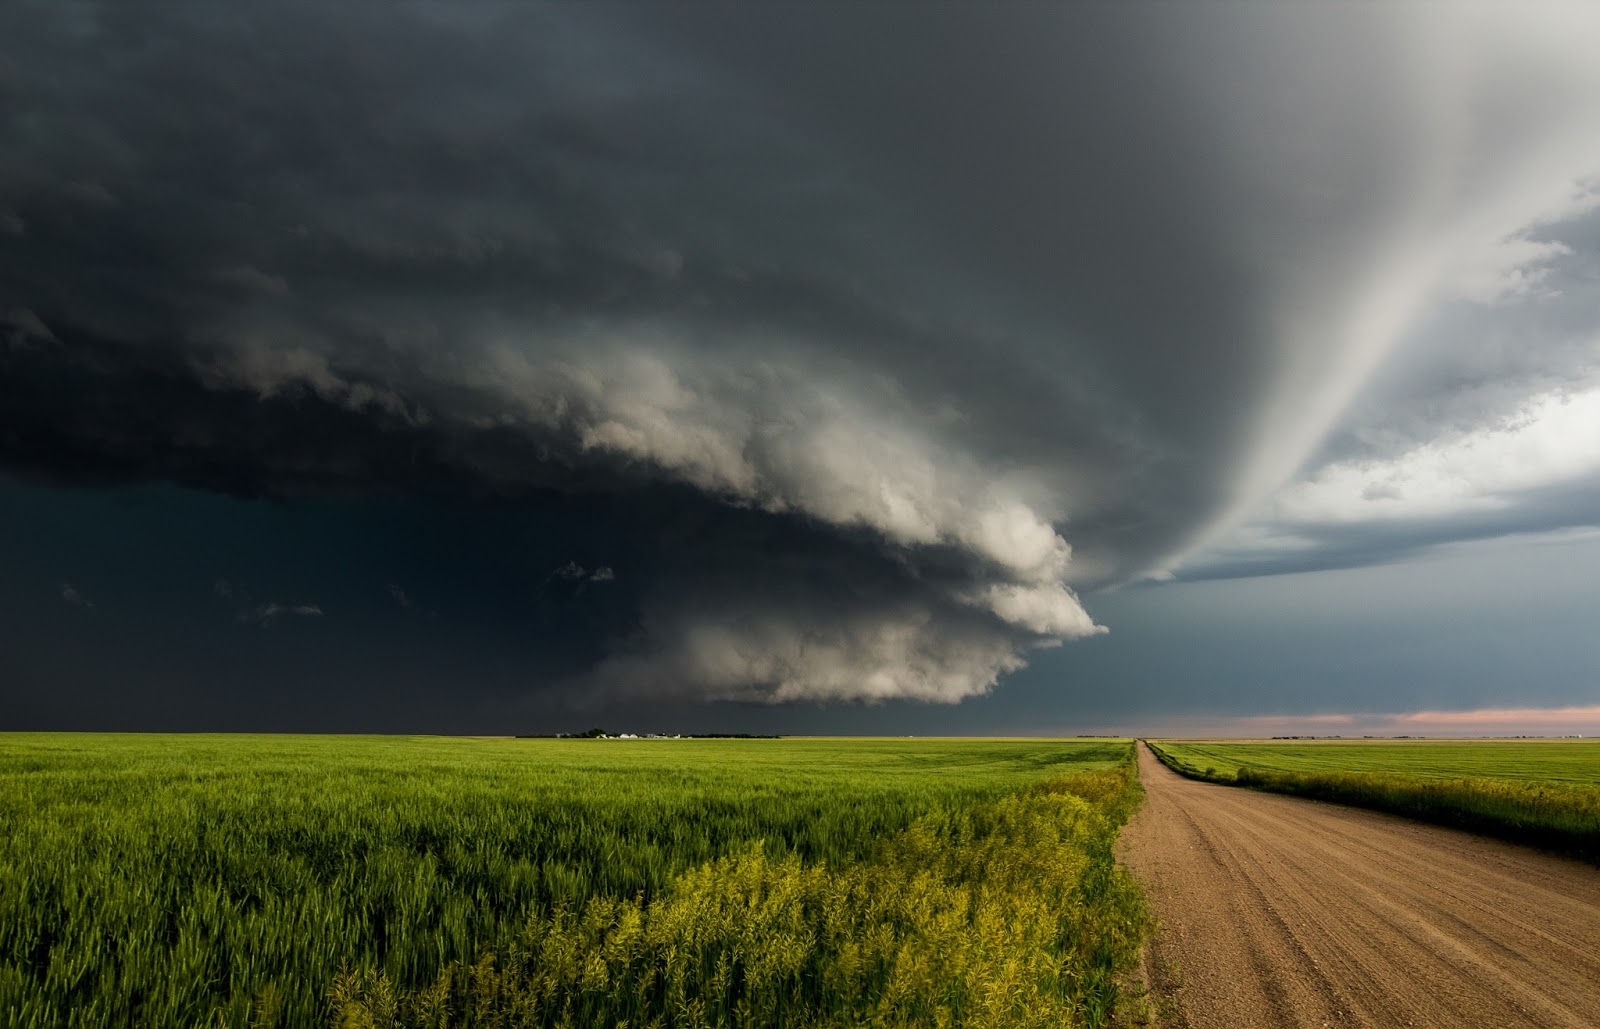 Tornado Supercell Diagram Wiring Gibson Les Paul Junior Atmospheric Phenomena 10 Most Amazing And Scary Images Of